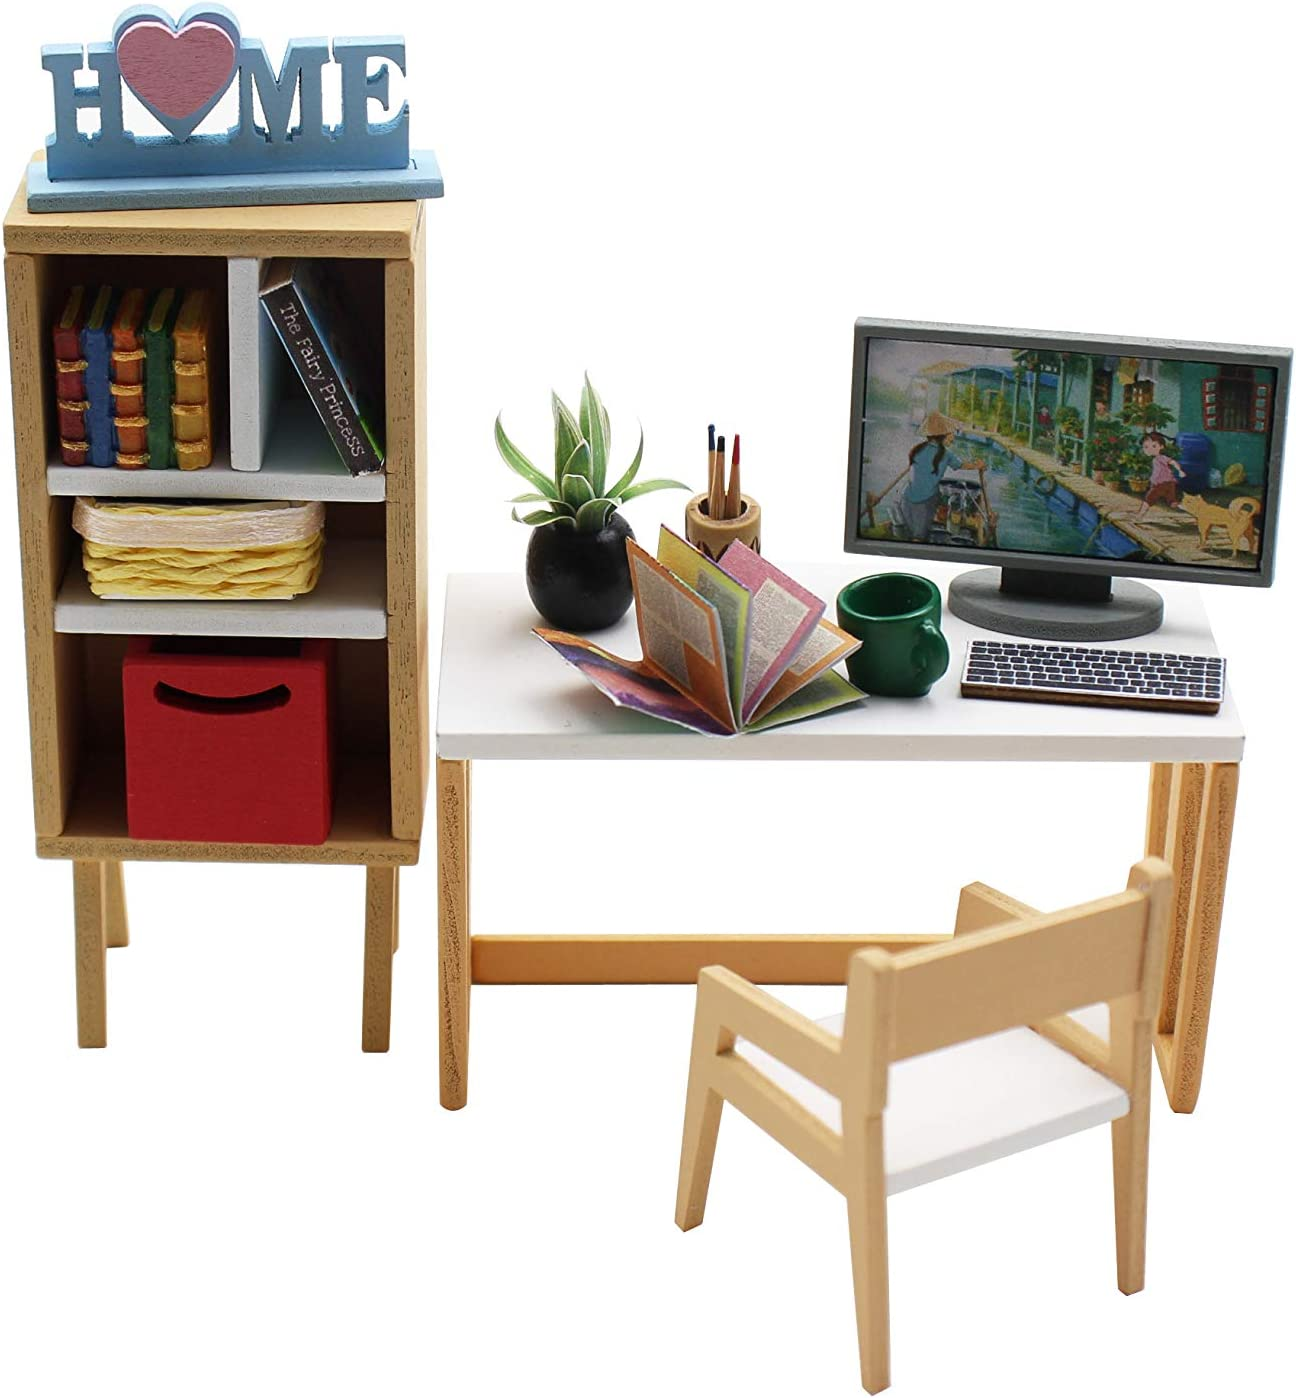 1:18 Cool Beans Boutique Miniature Dollhouse Furniture DIY Kit – Workstation Set with Computer, Desk, Chair, and Bookcase – 1:18 Scale Miniature Furniture (English Manual) 1181035